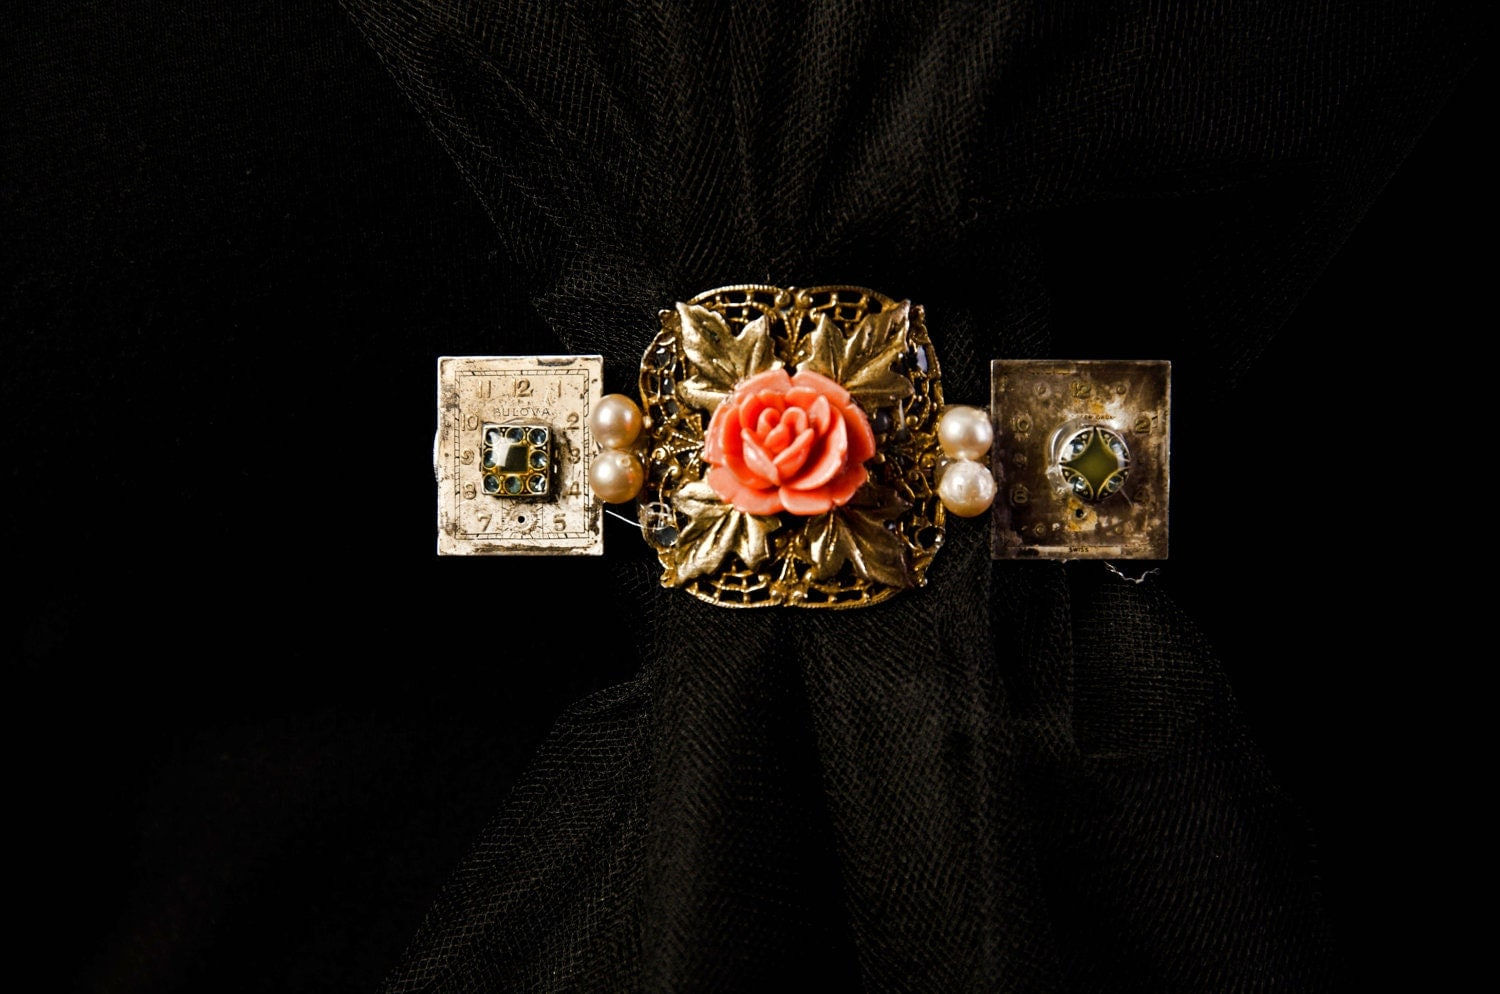 Annabel pearl, rose, and watch dial barrette